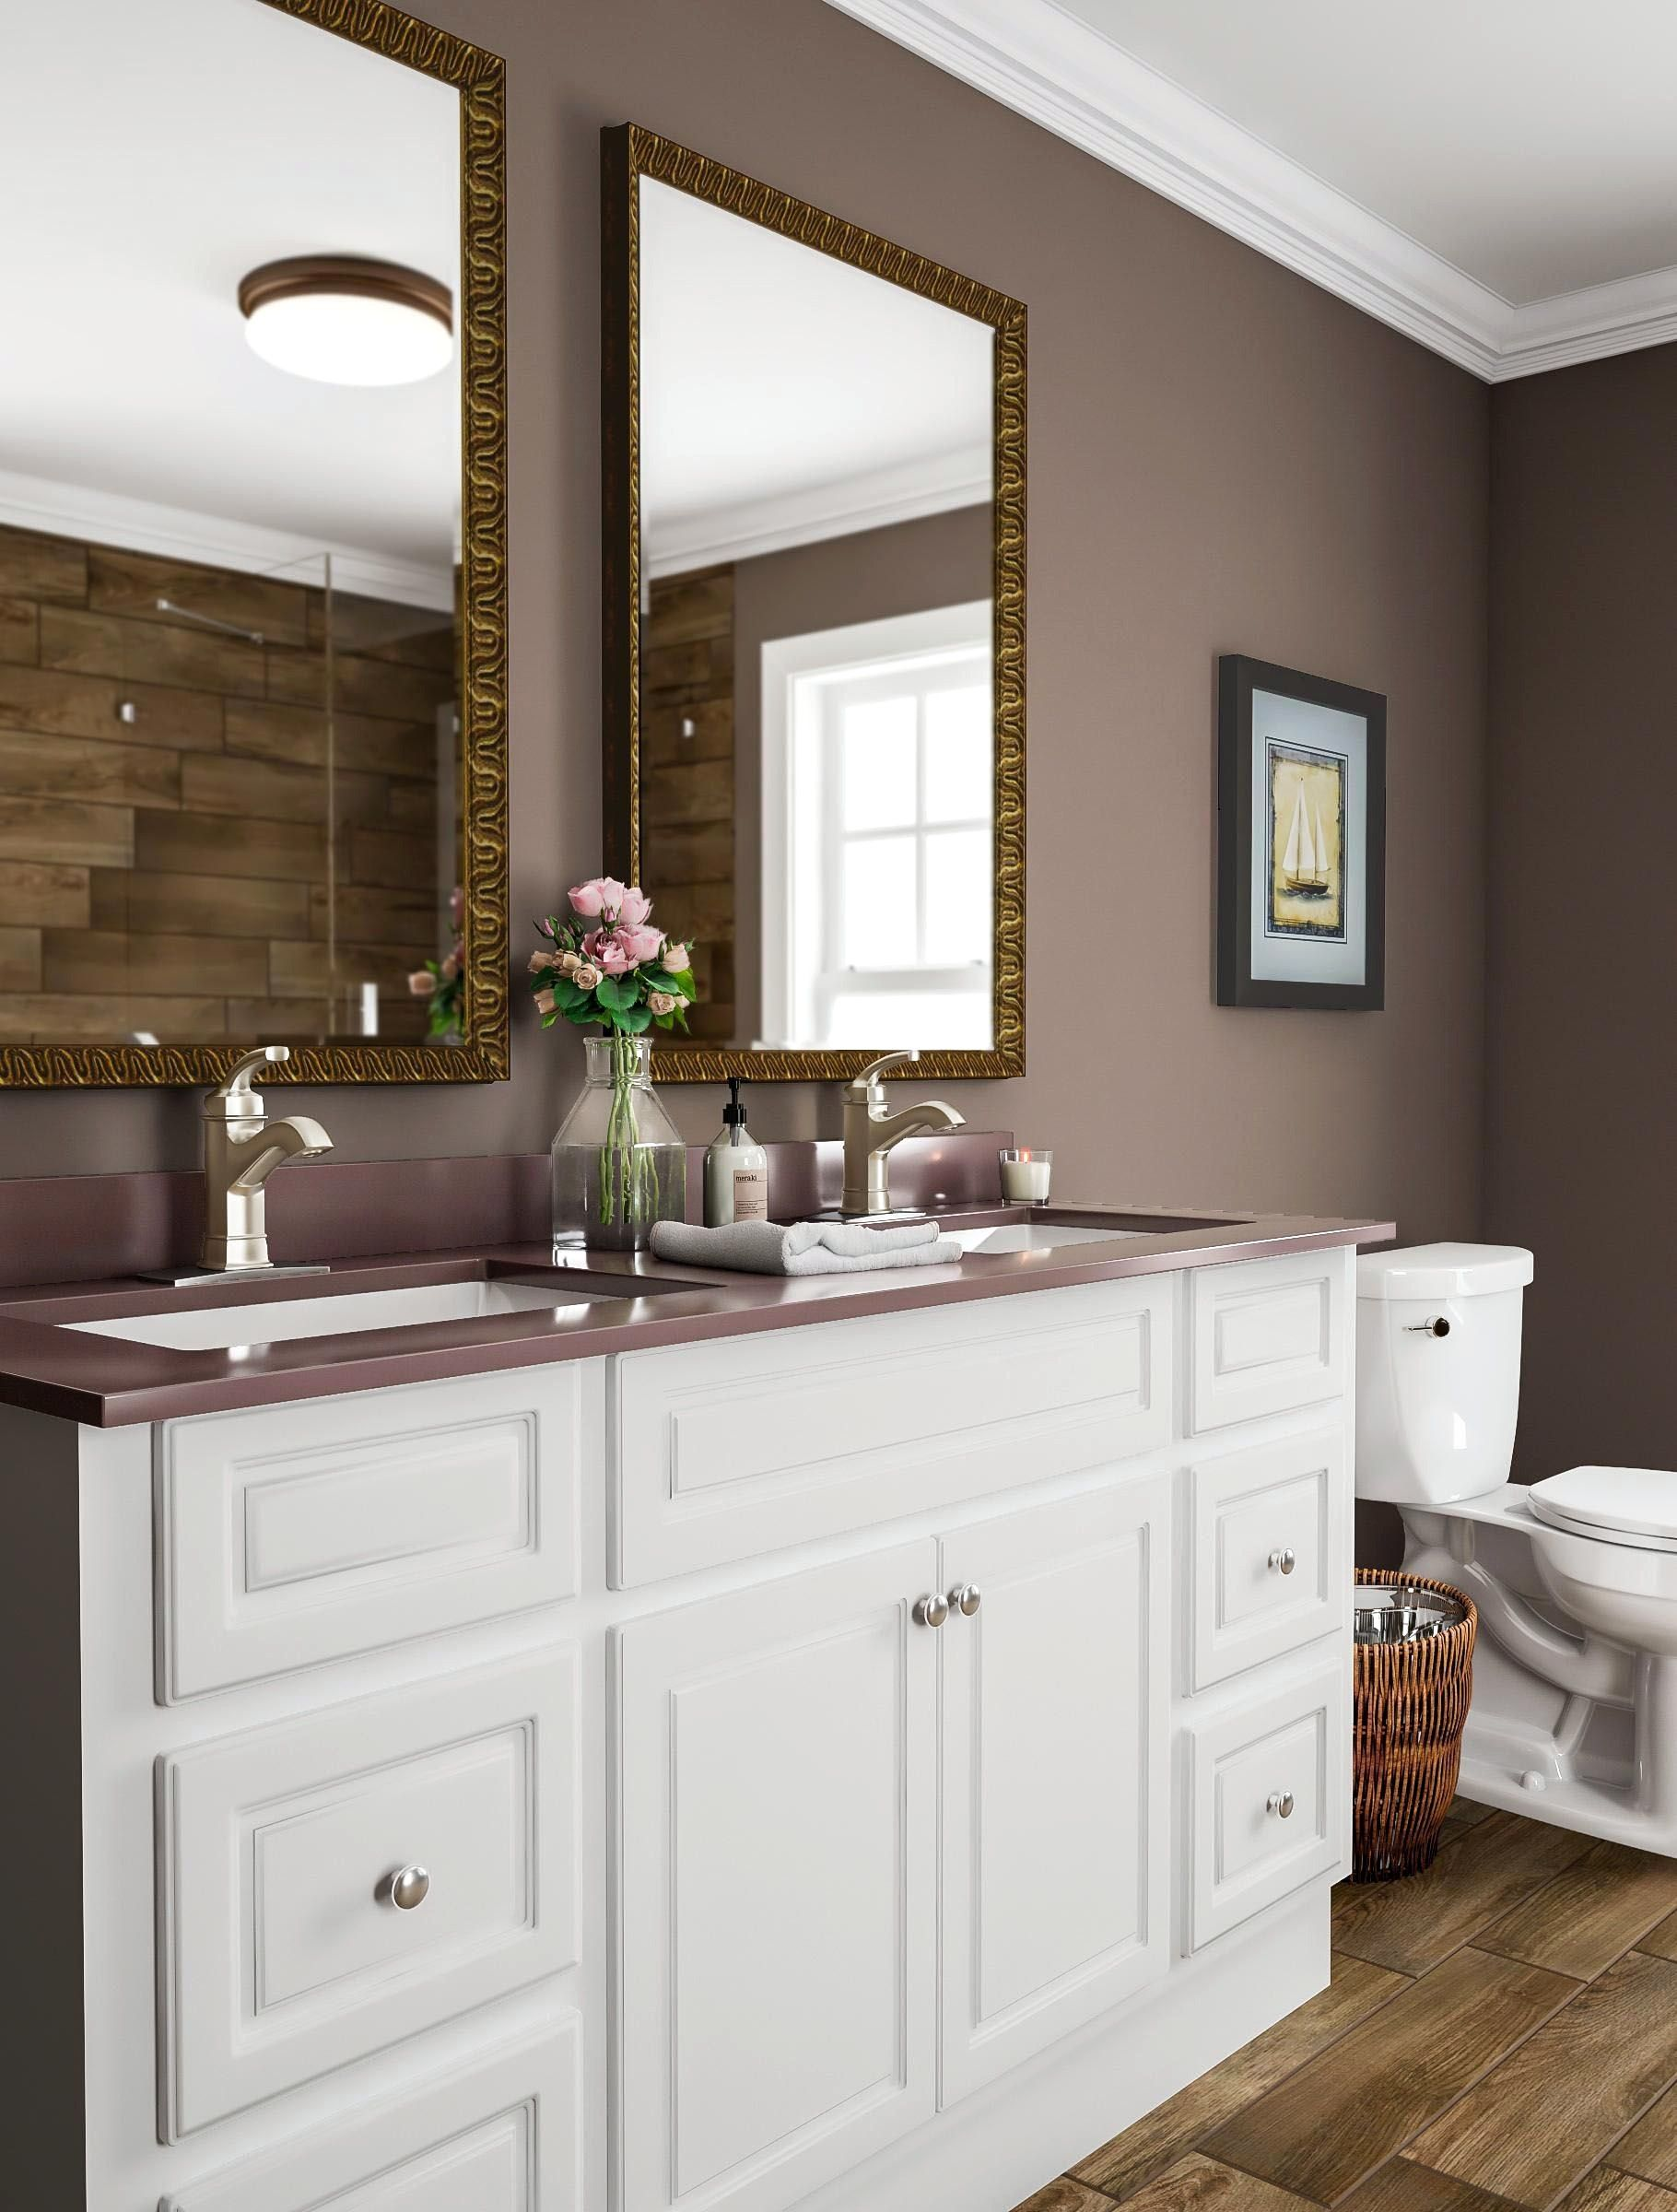 brown bathroom paint colors in 2020 bathroom color on interior paint color schemes ideas id=25032